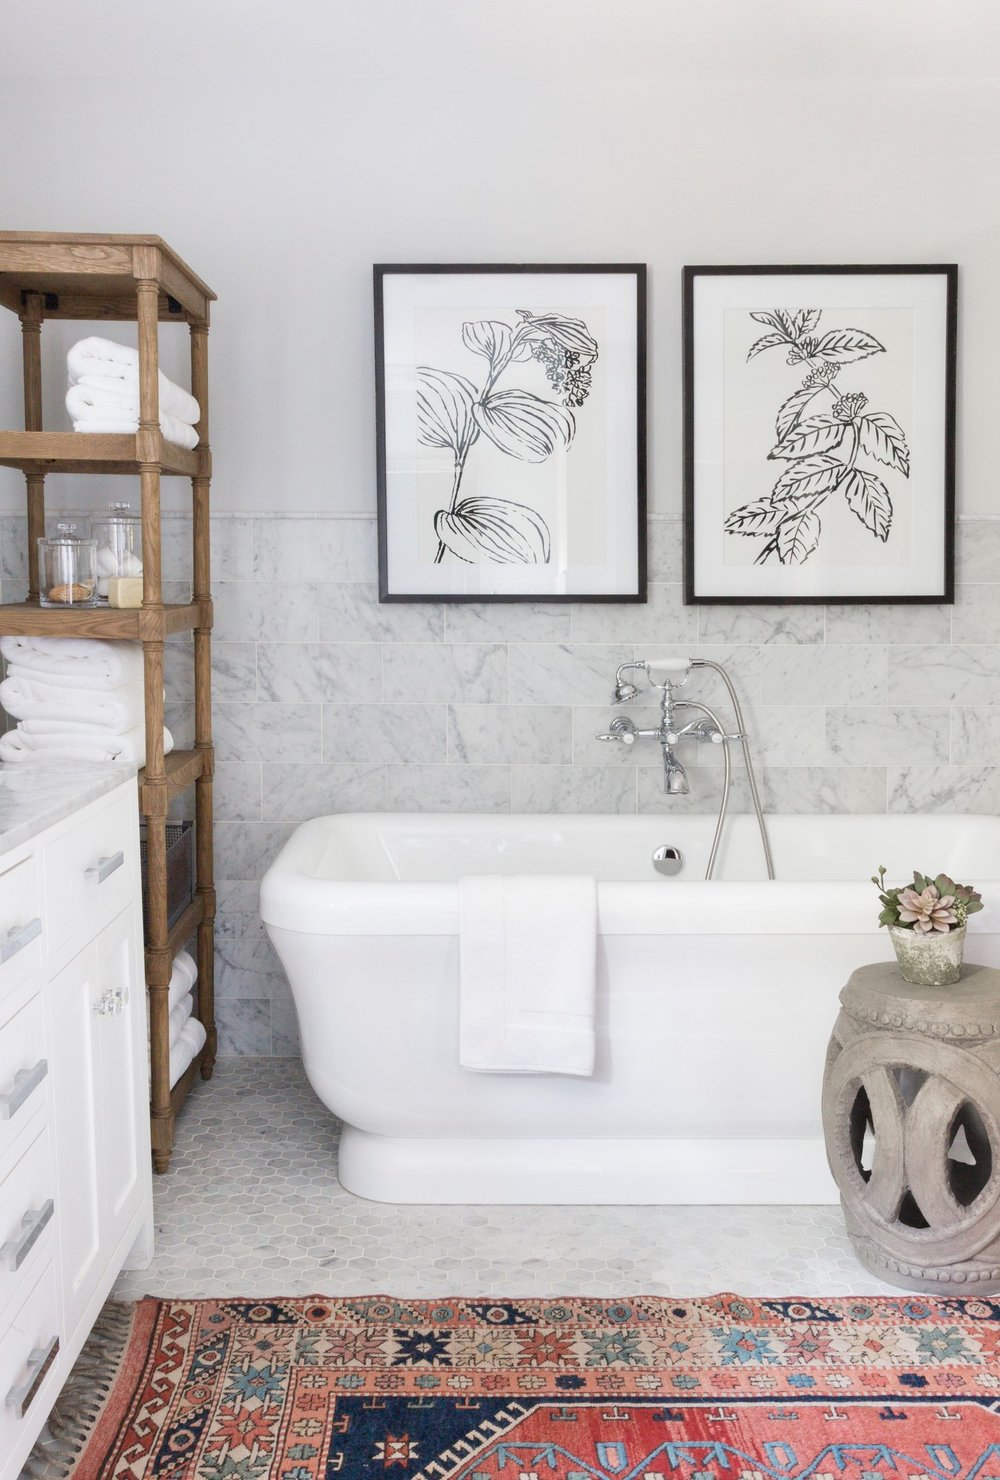 White porcelain tub in master bathroom